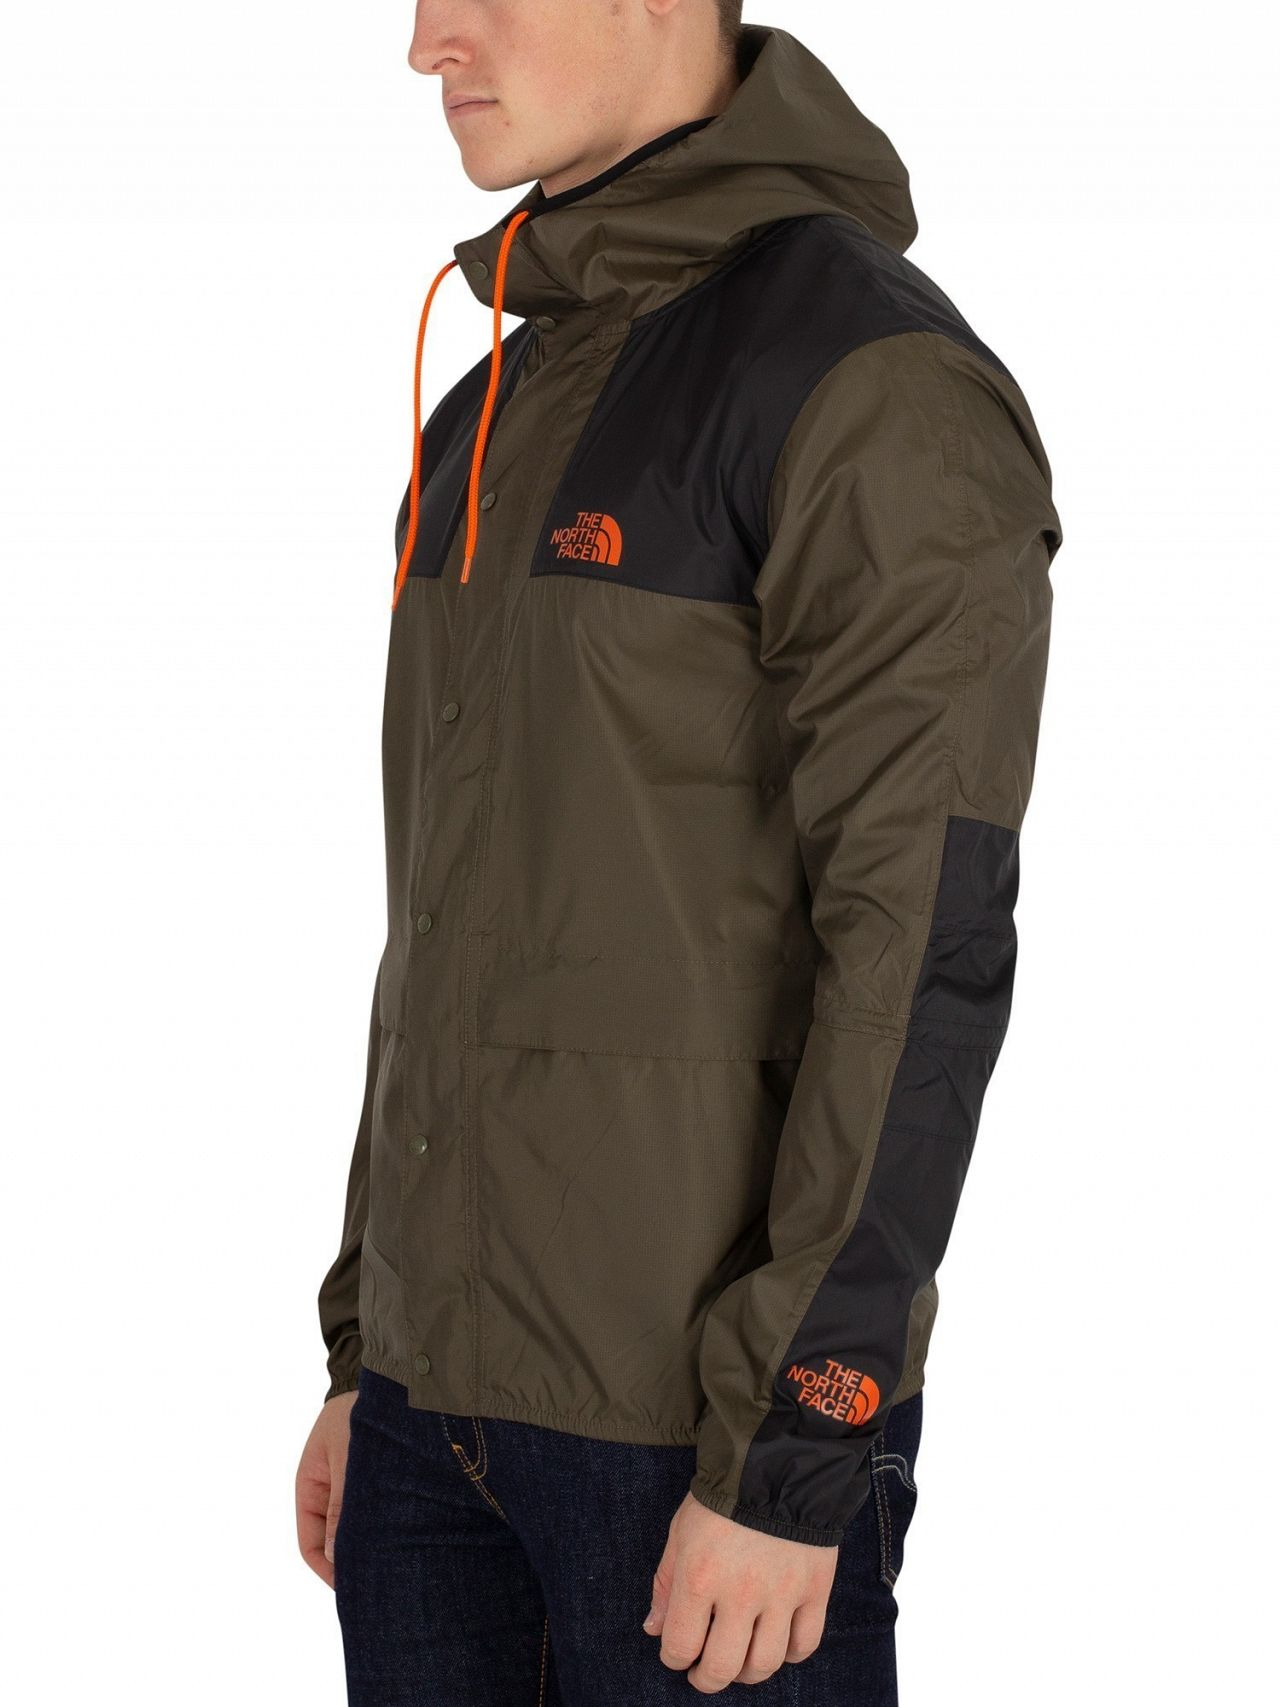 68b3c6ce80 The North Face Green 1985 Mountain Jacket